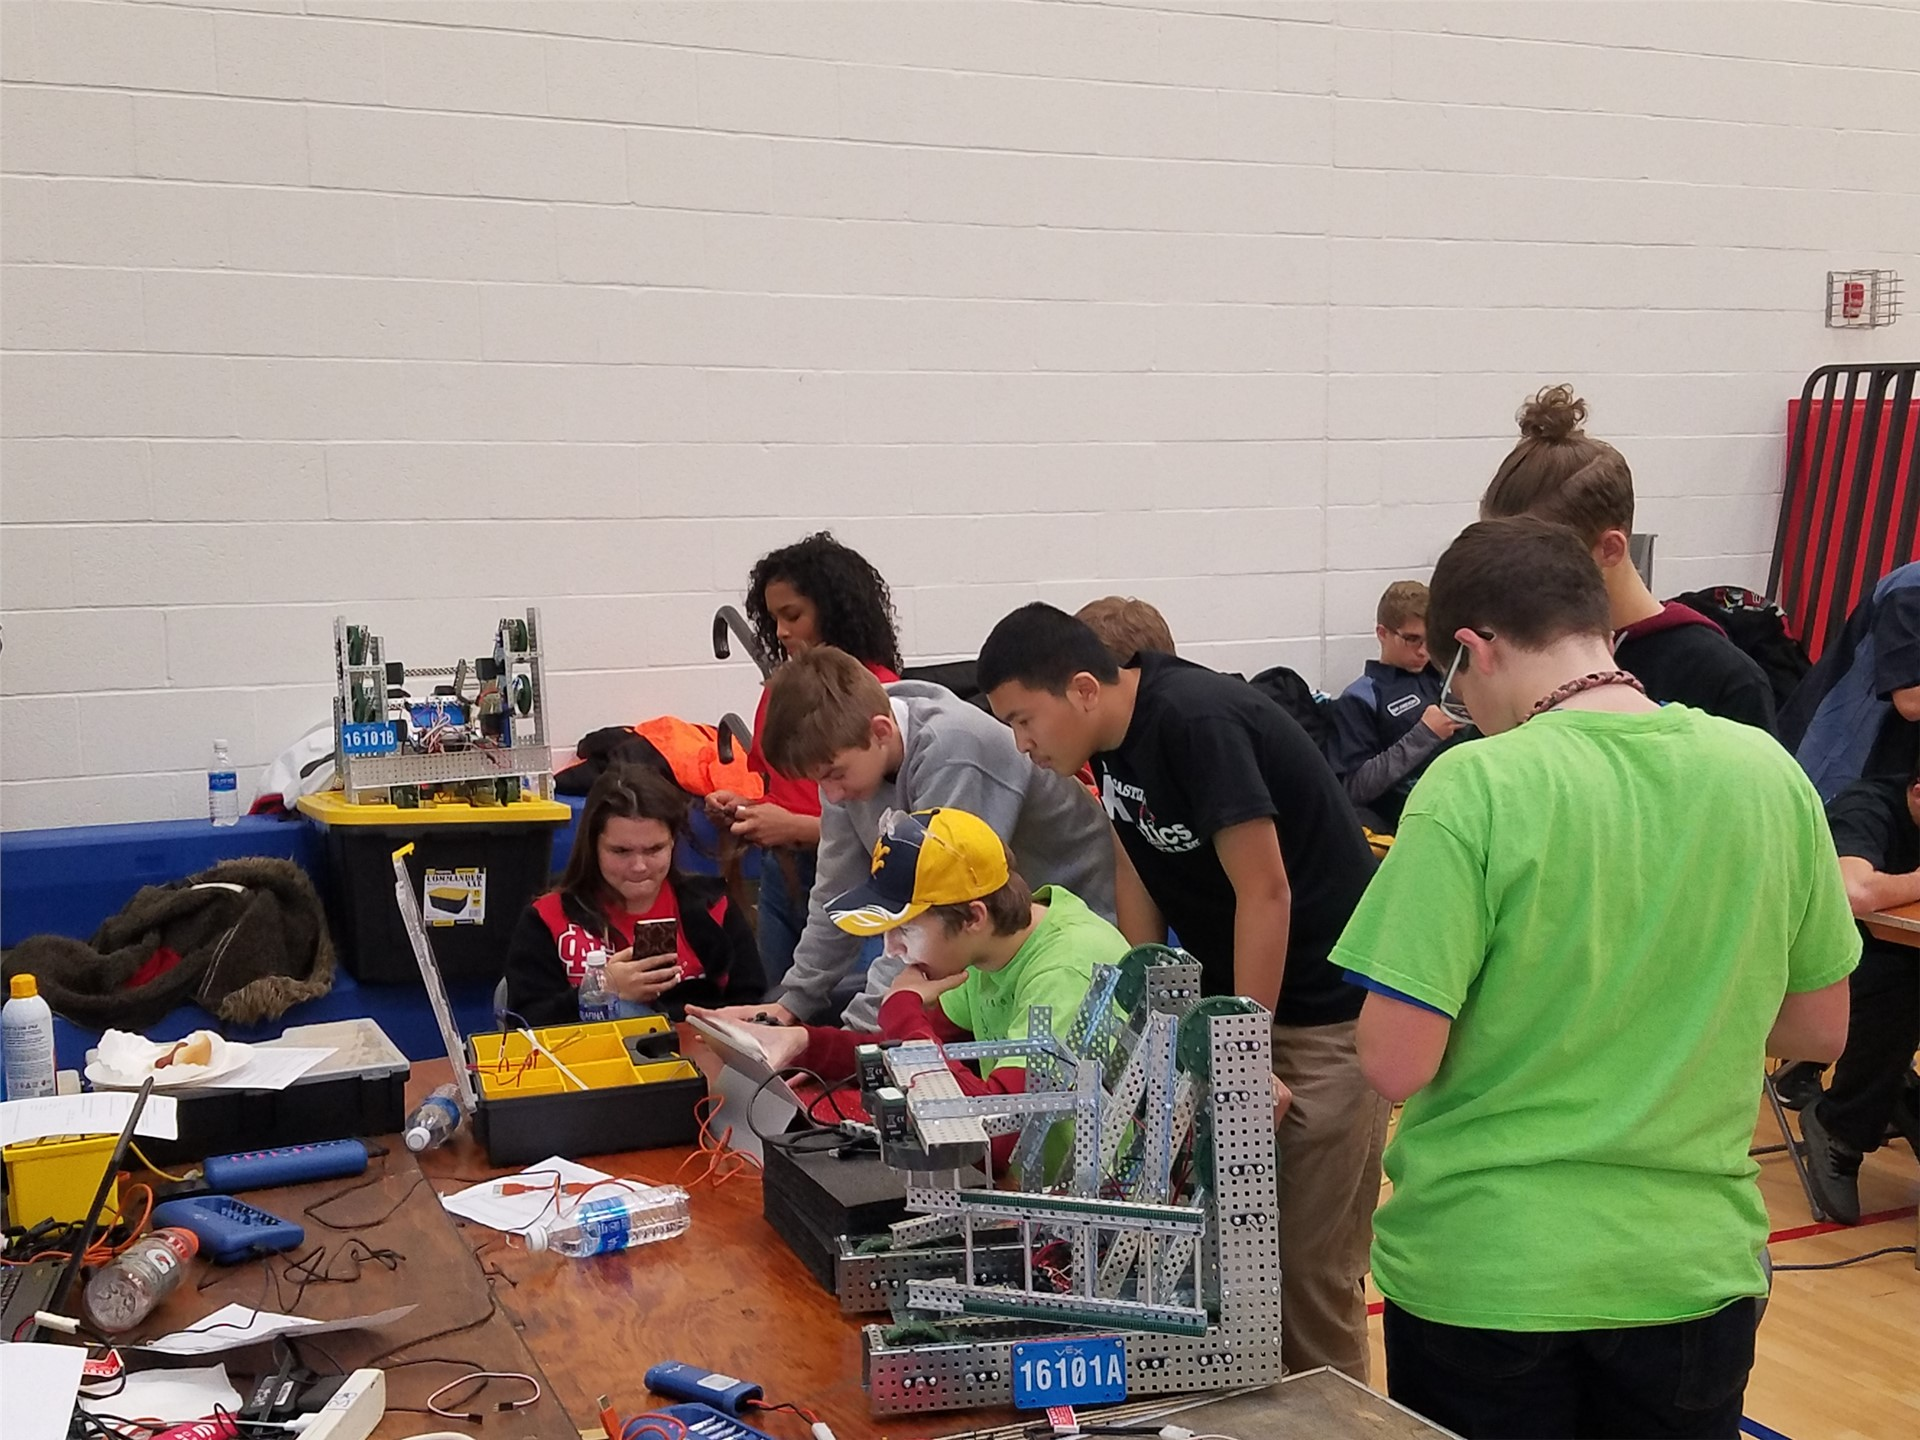 Students work on their robotics projects